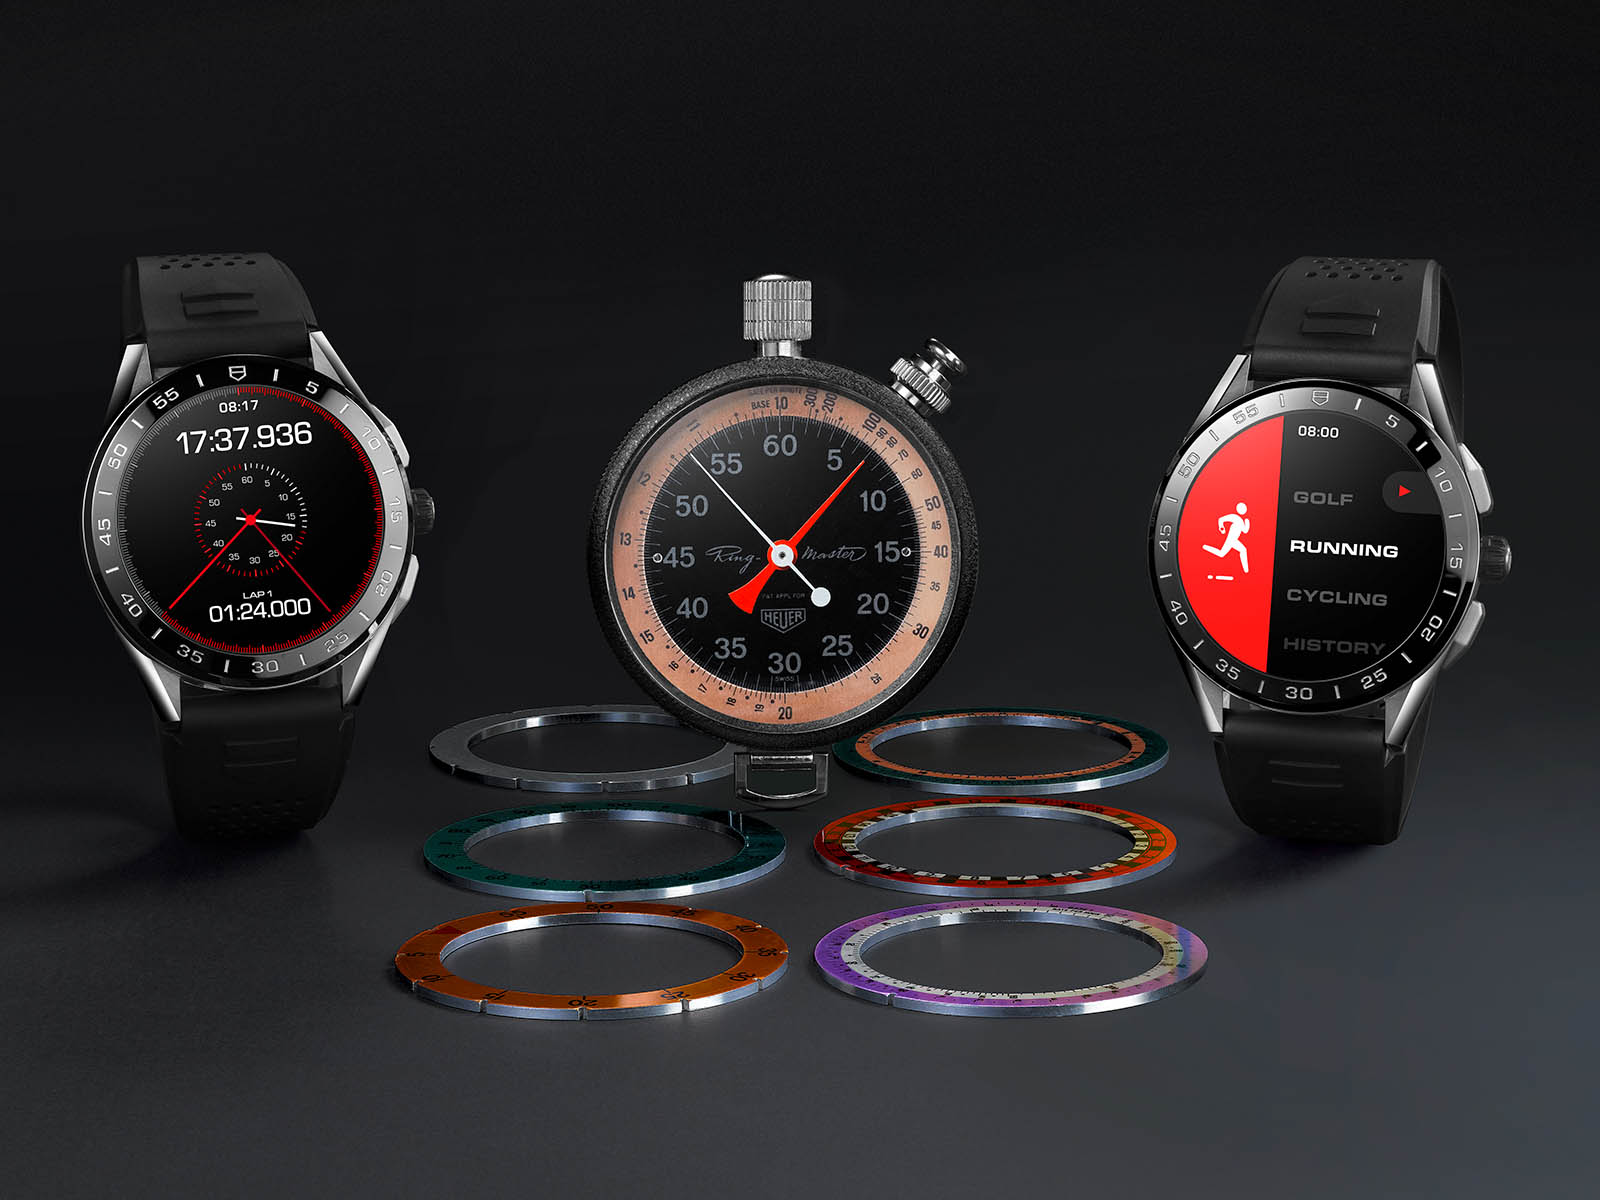 quarantine-friendly-connected-watches-tag-heuer-connected-2020.jpg